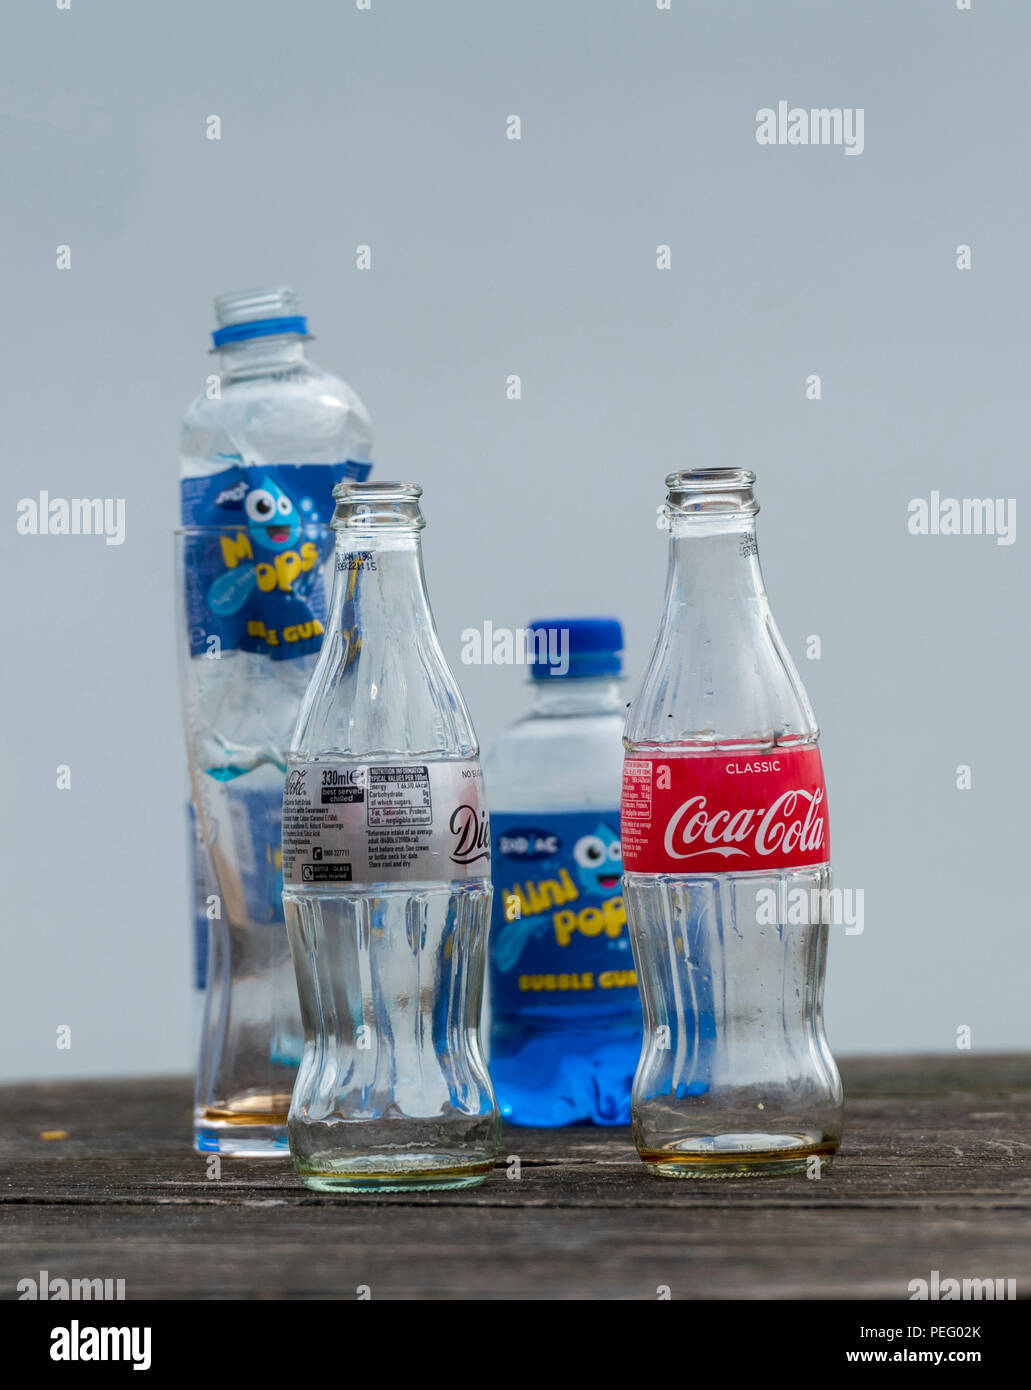 plastic and glass bottles left on a bench at the seaside polluting and littering the countryside. - Stock Image